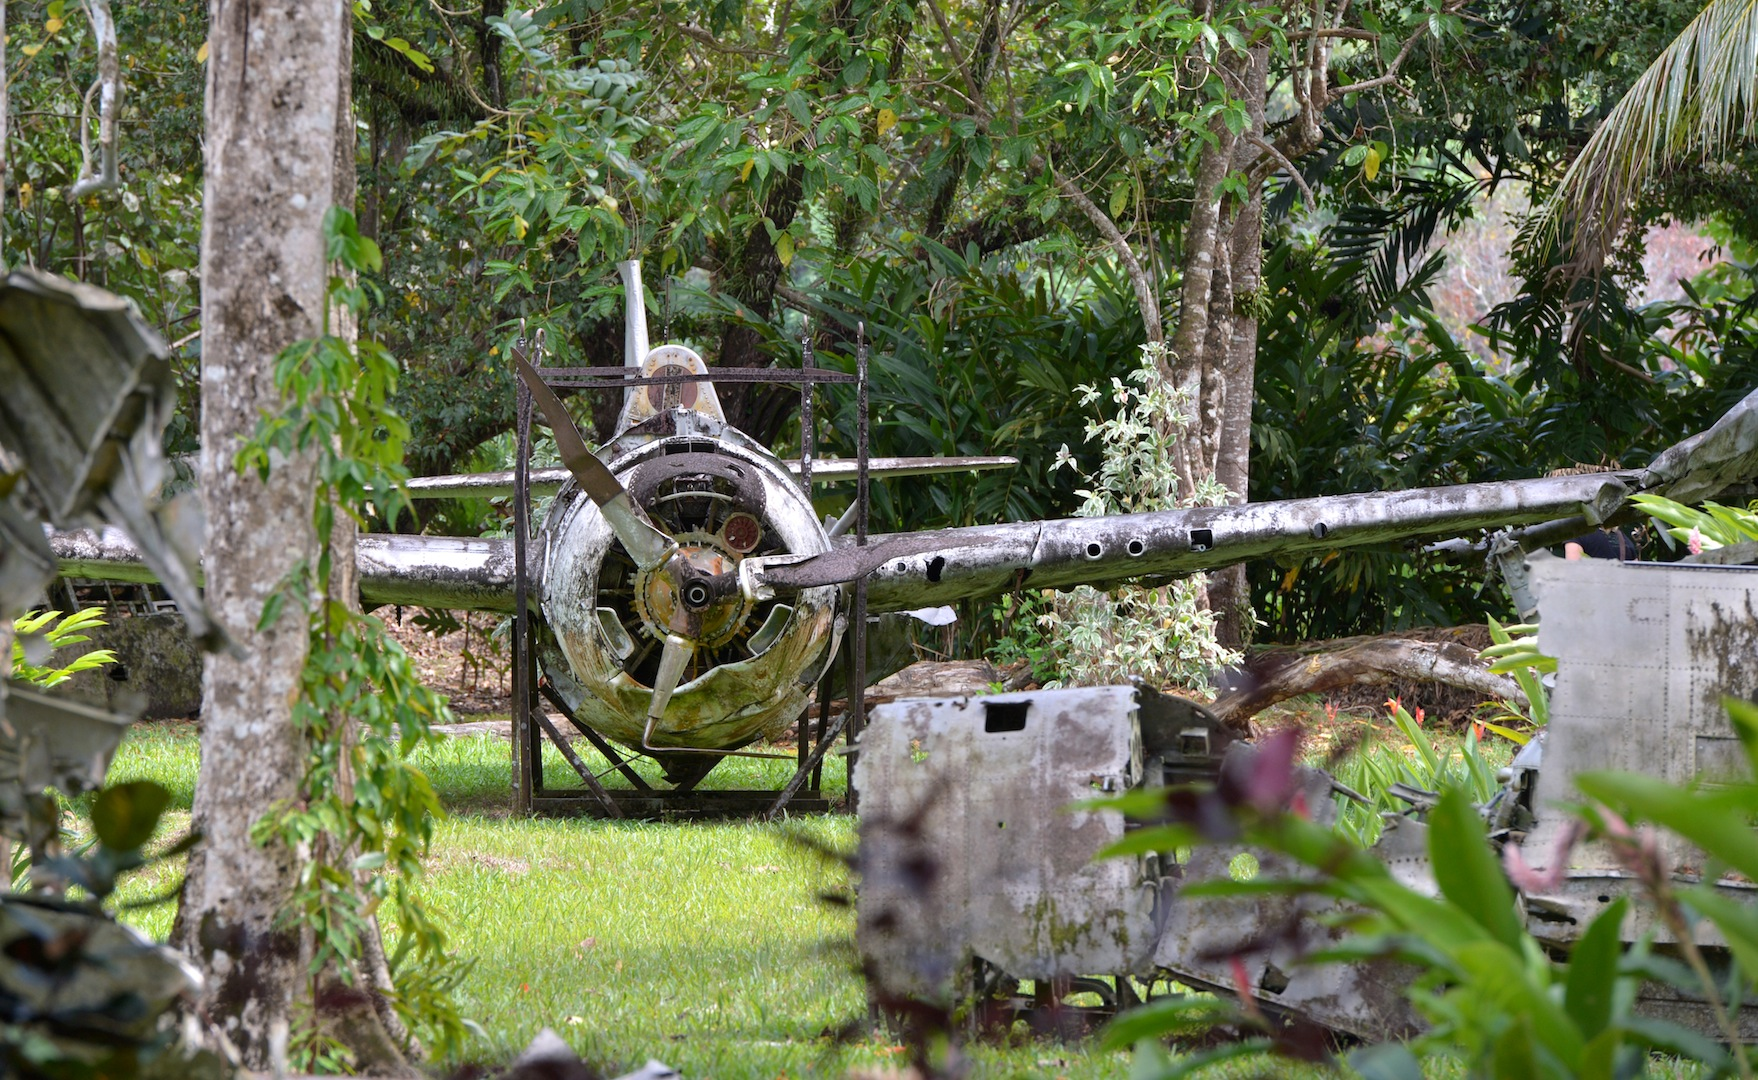 USFighter Aircraft – Vilu Open Air War Museum, Honiara - Photo credit to Solomon Islands Visitors Bureau (SIVB)